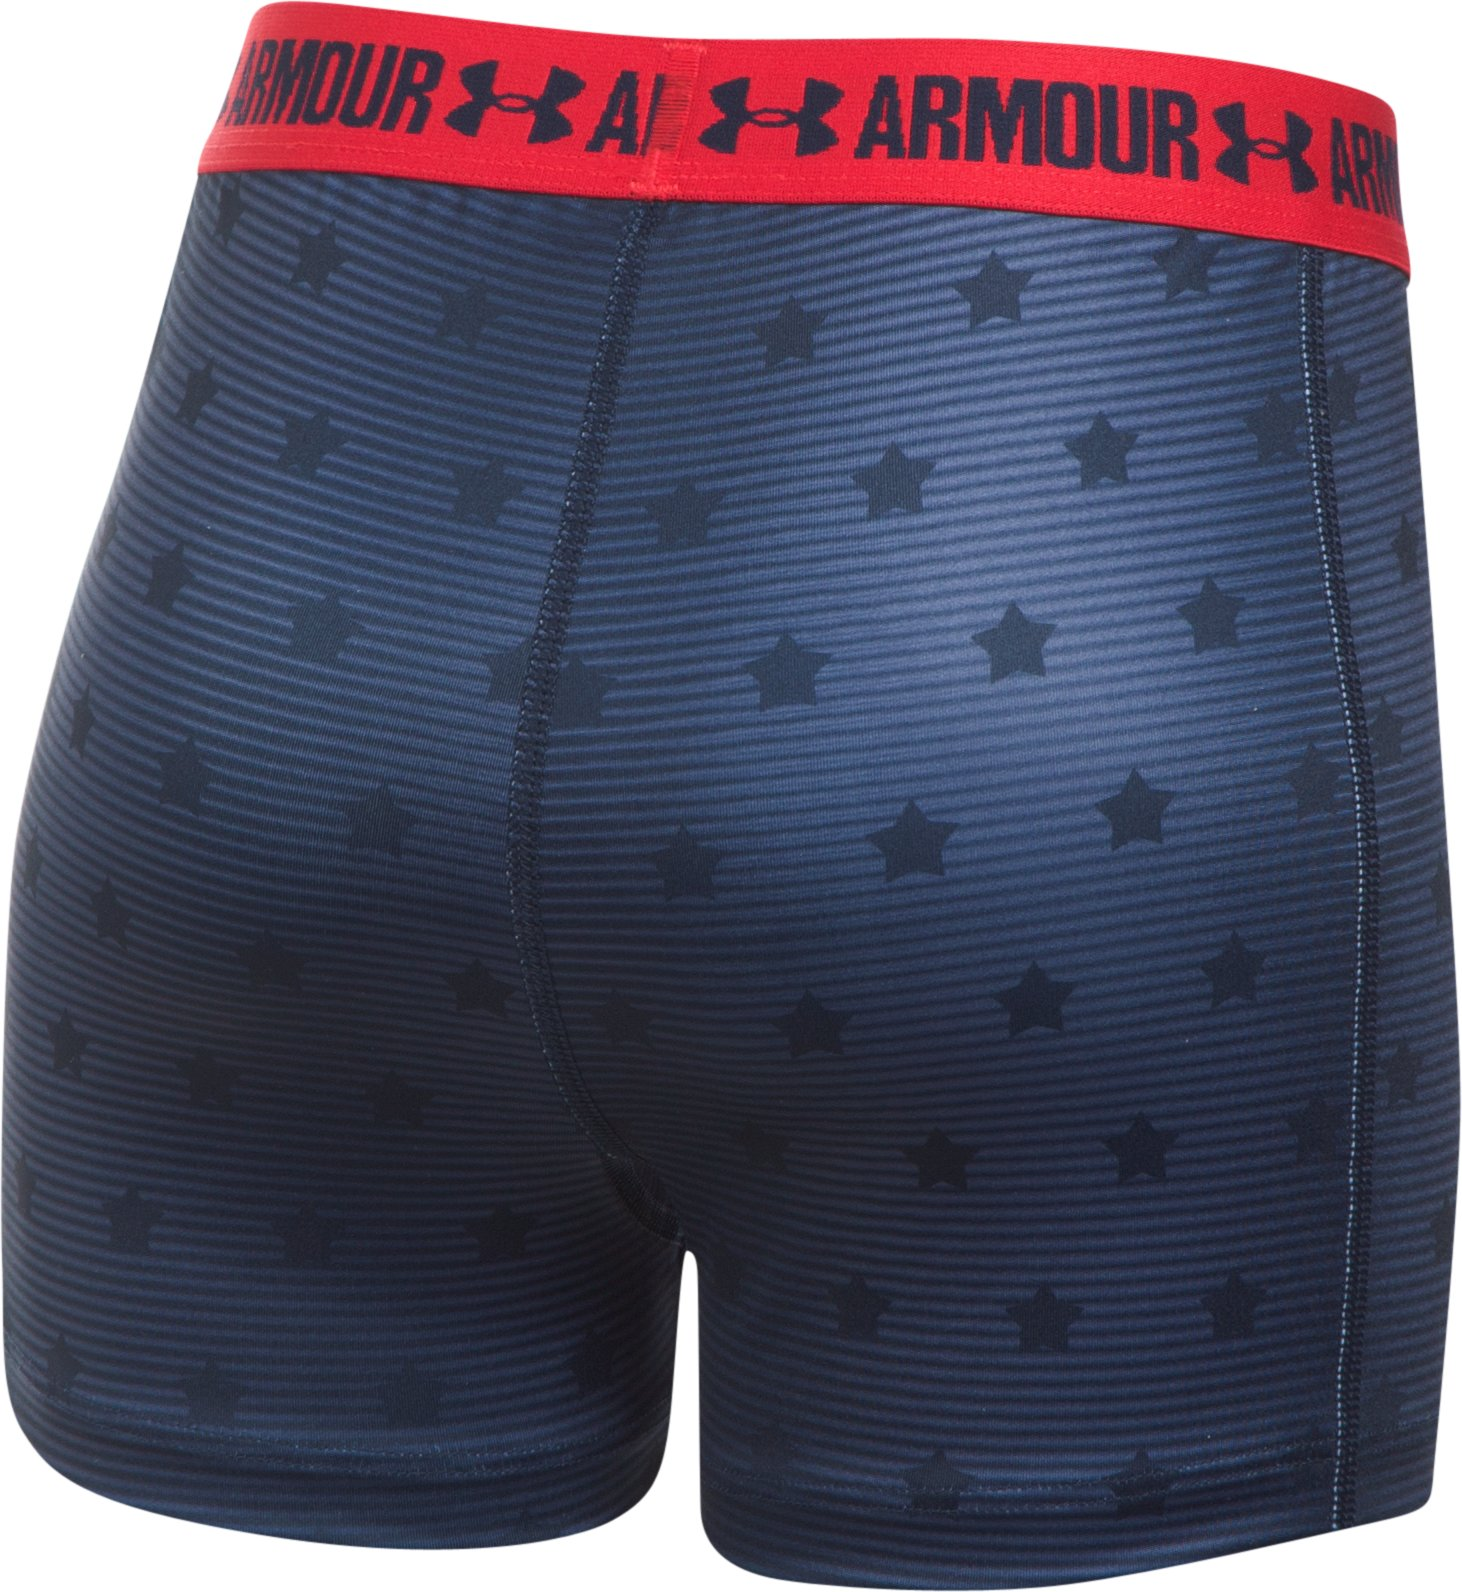 Girls' Under Armour® Alter Ego Wonder Woman Armour® Shorty, Midnight Navy,